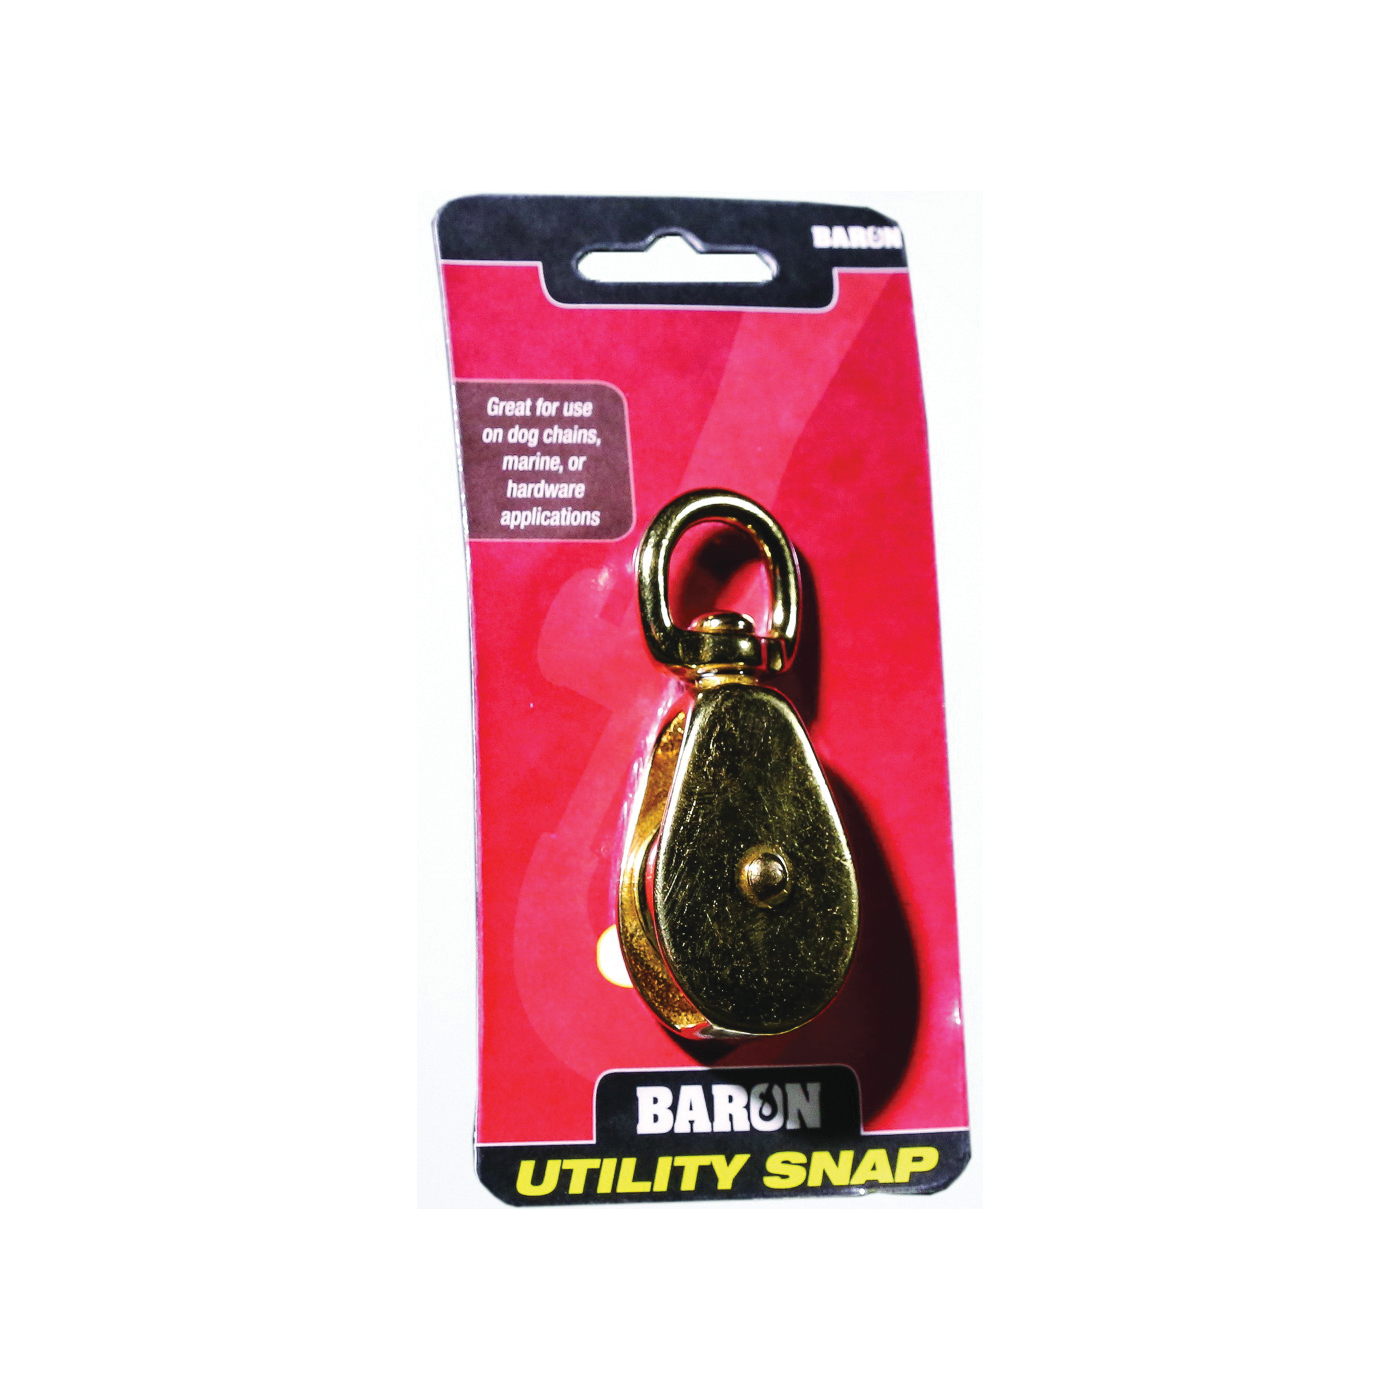 Picture of BARON C-0173B-1-1/4 Single Rope Pulley, 5/16 in Rope, 1-1/4 in Sheave, Polished